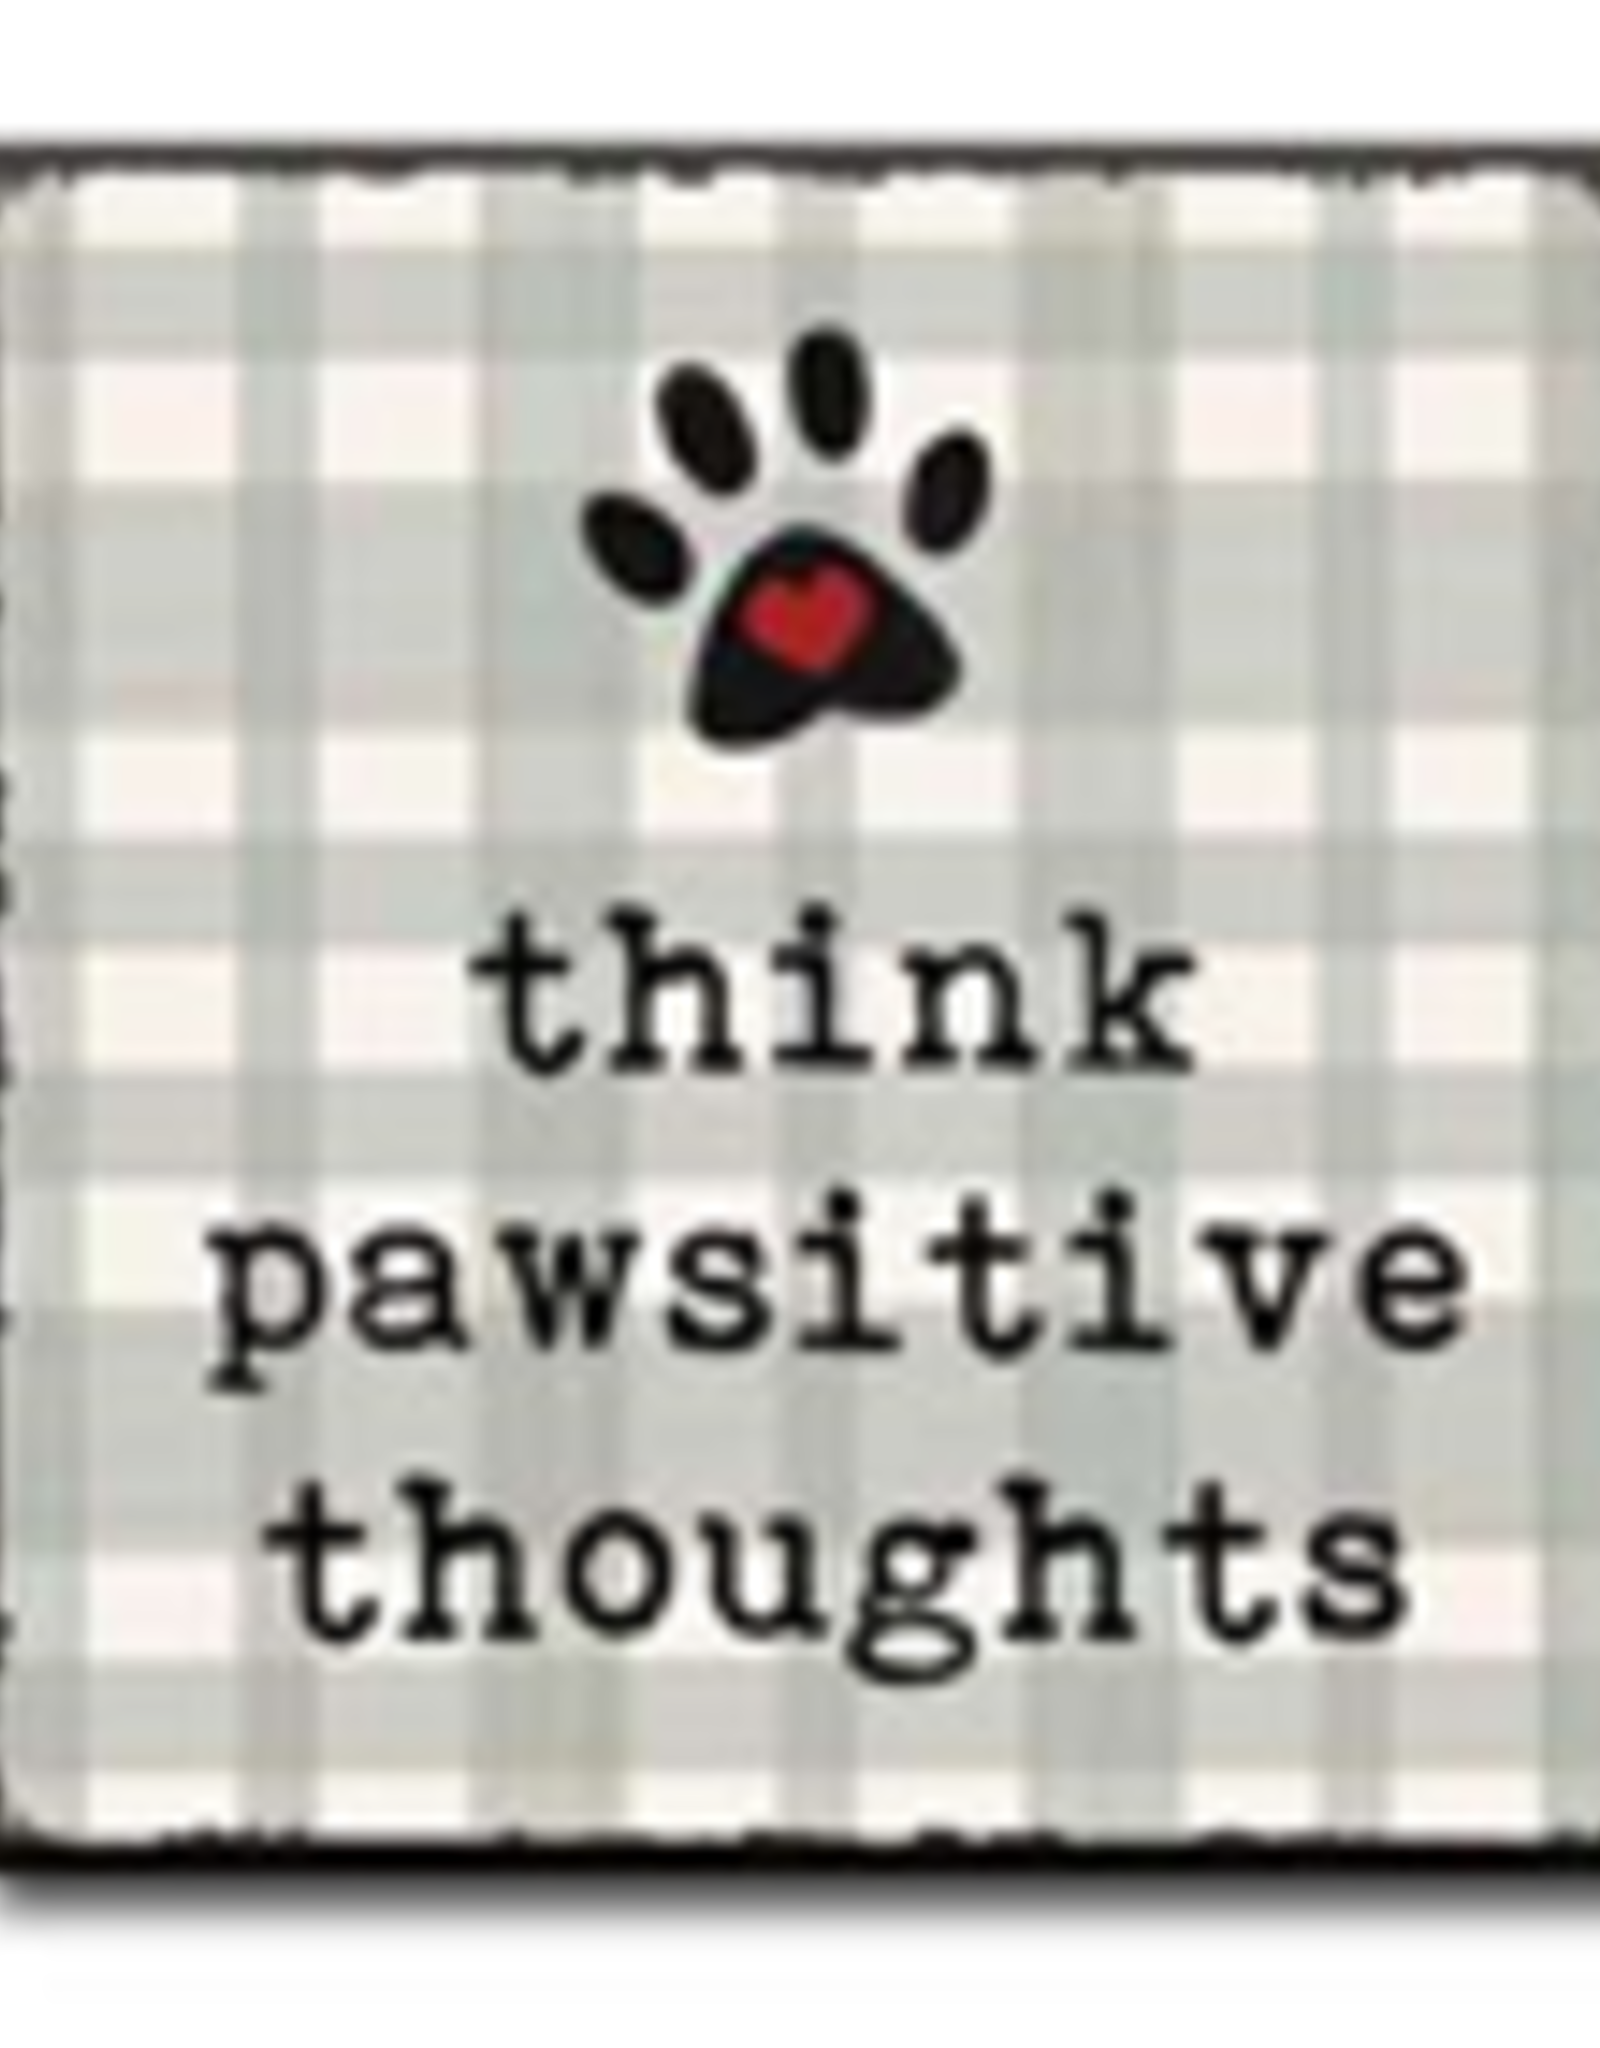 Think Pawsitive Thoughts 4x4